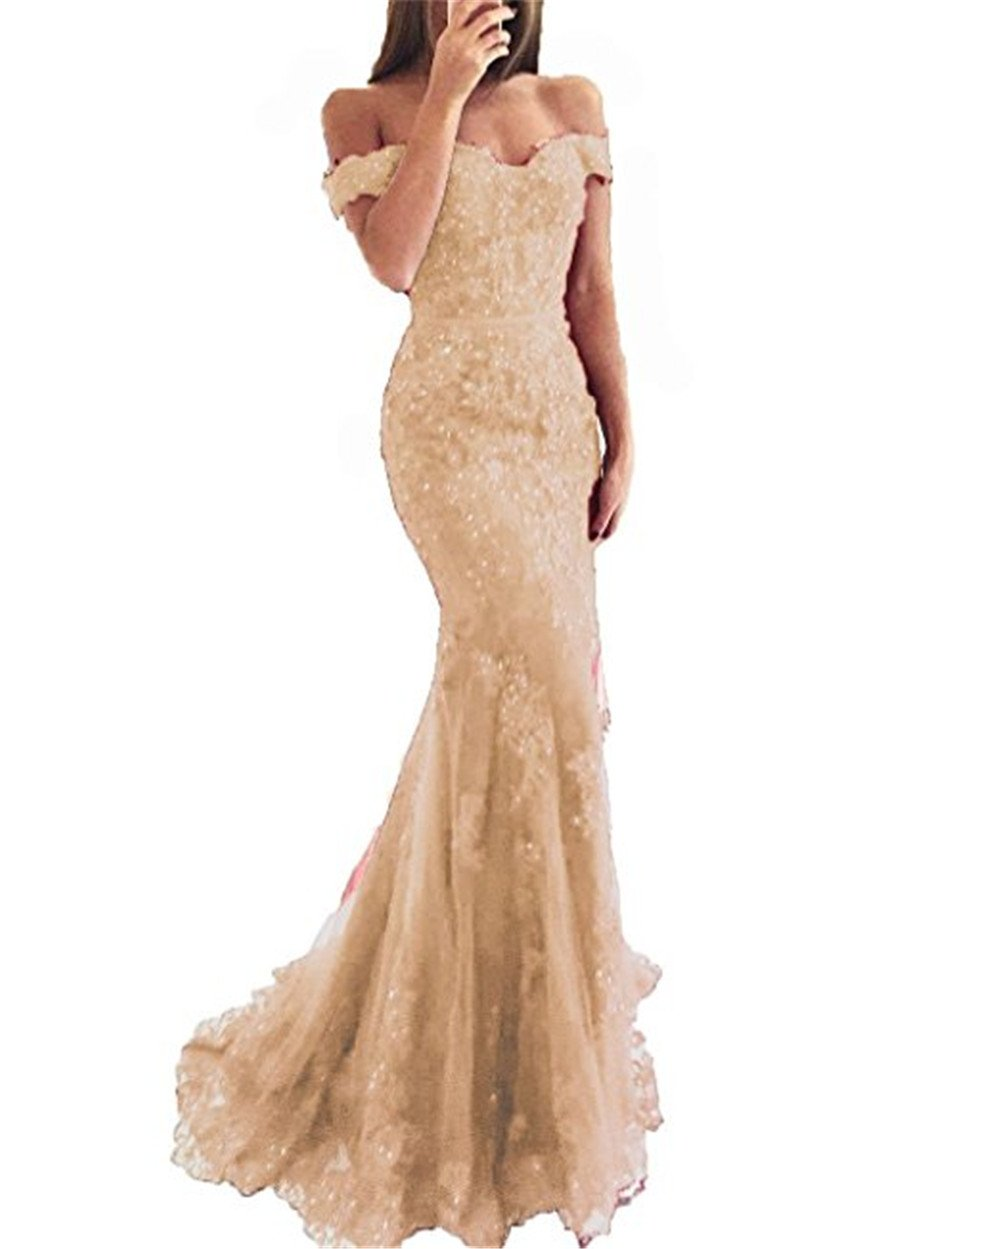 YSMei Lace Mermaid Tulle Prom Dresses Off Shoulder Long Beaded Formal Party Gown Champagne 10